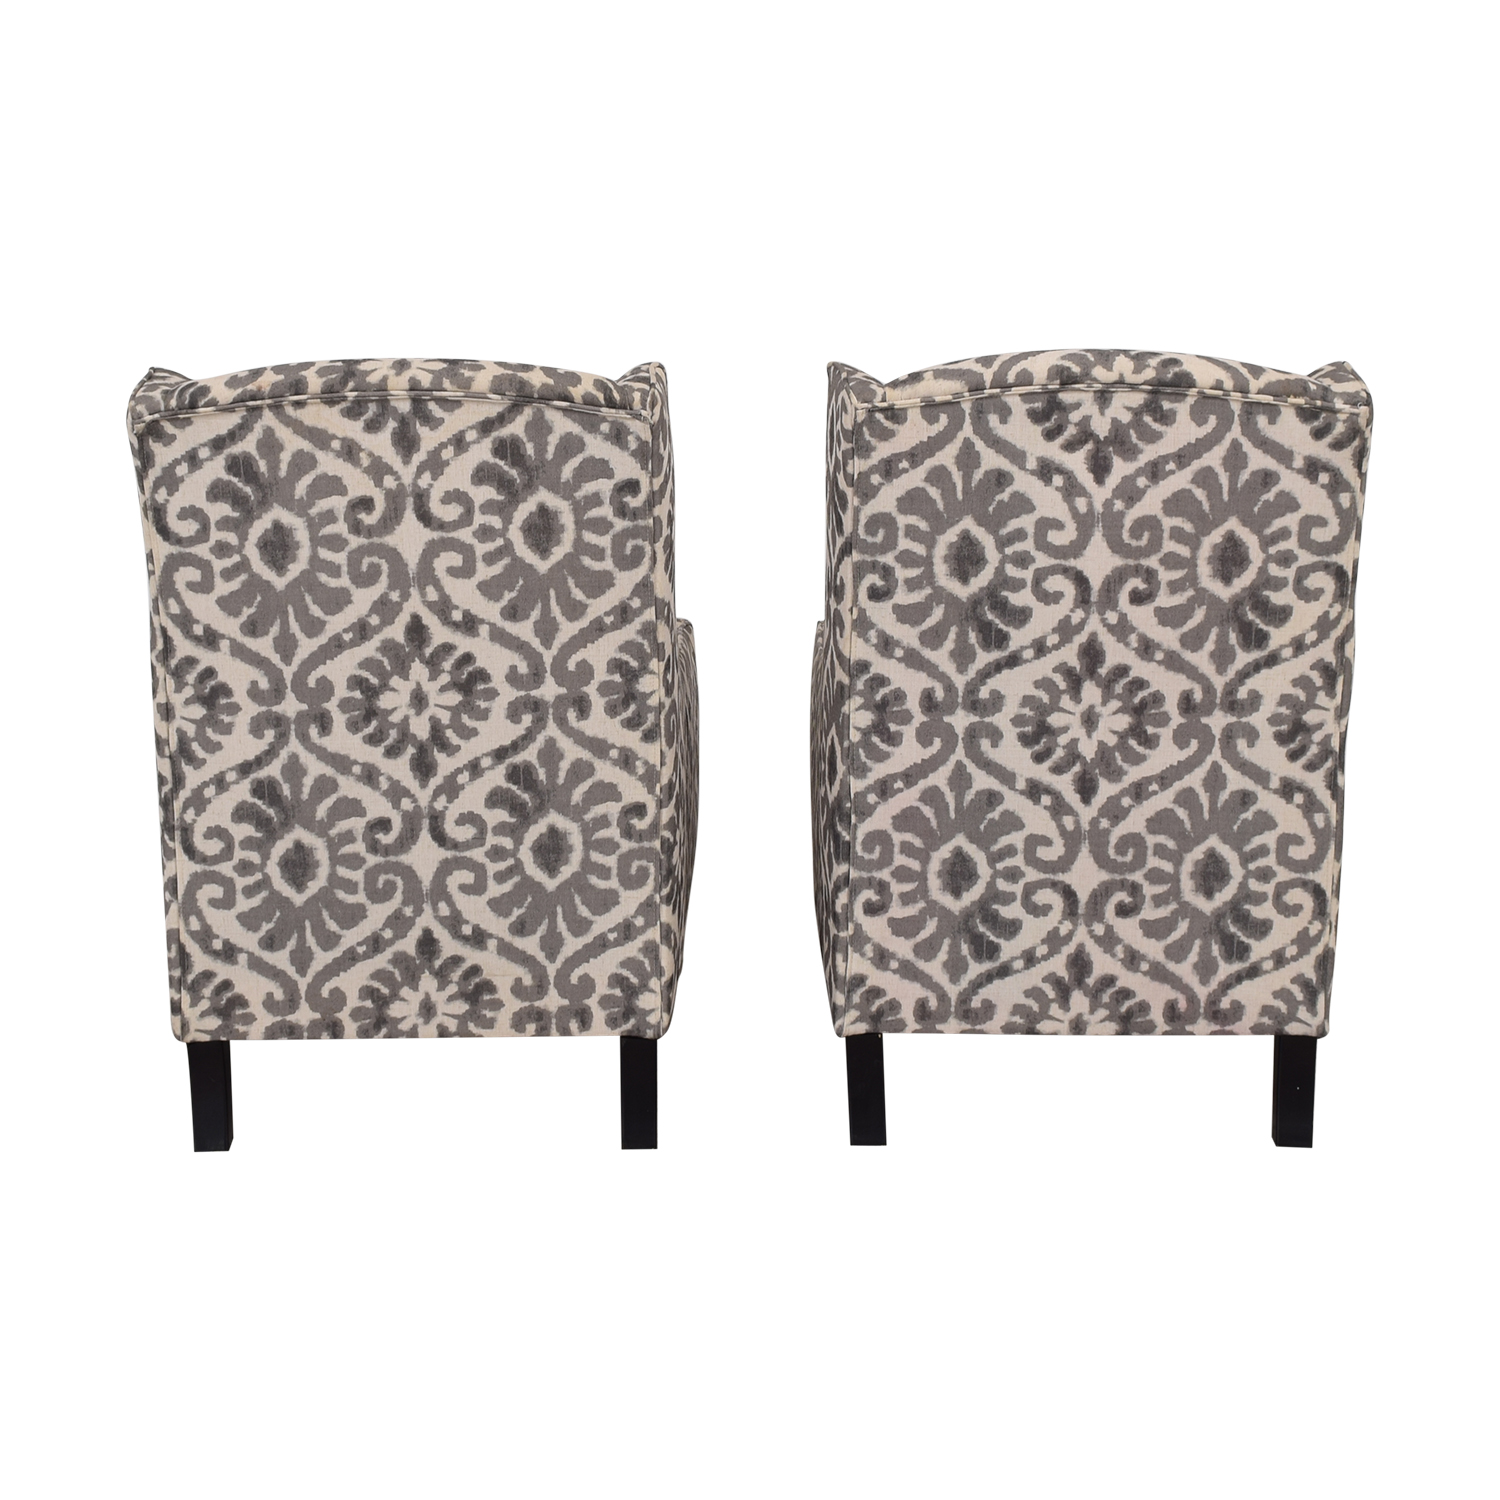 Ashley Furniture Grey and White Accent Chairs / Sofas